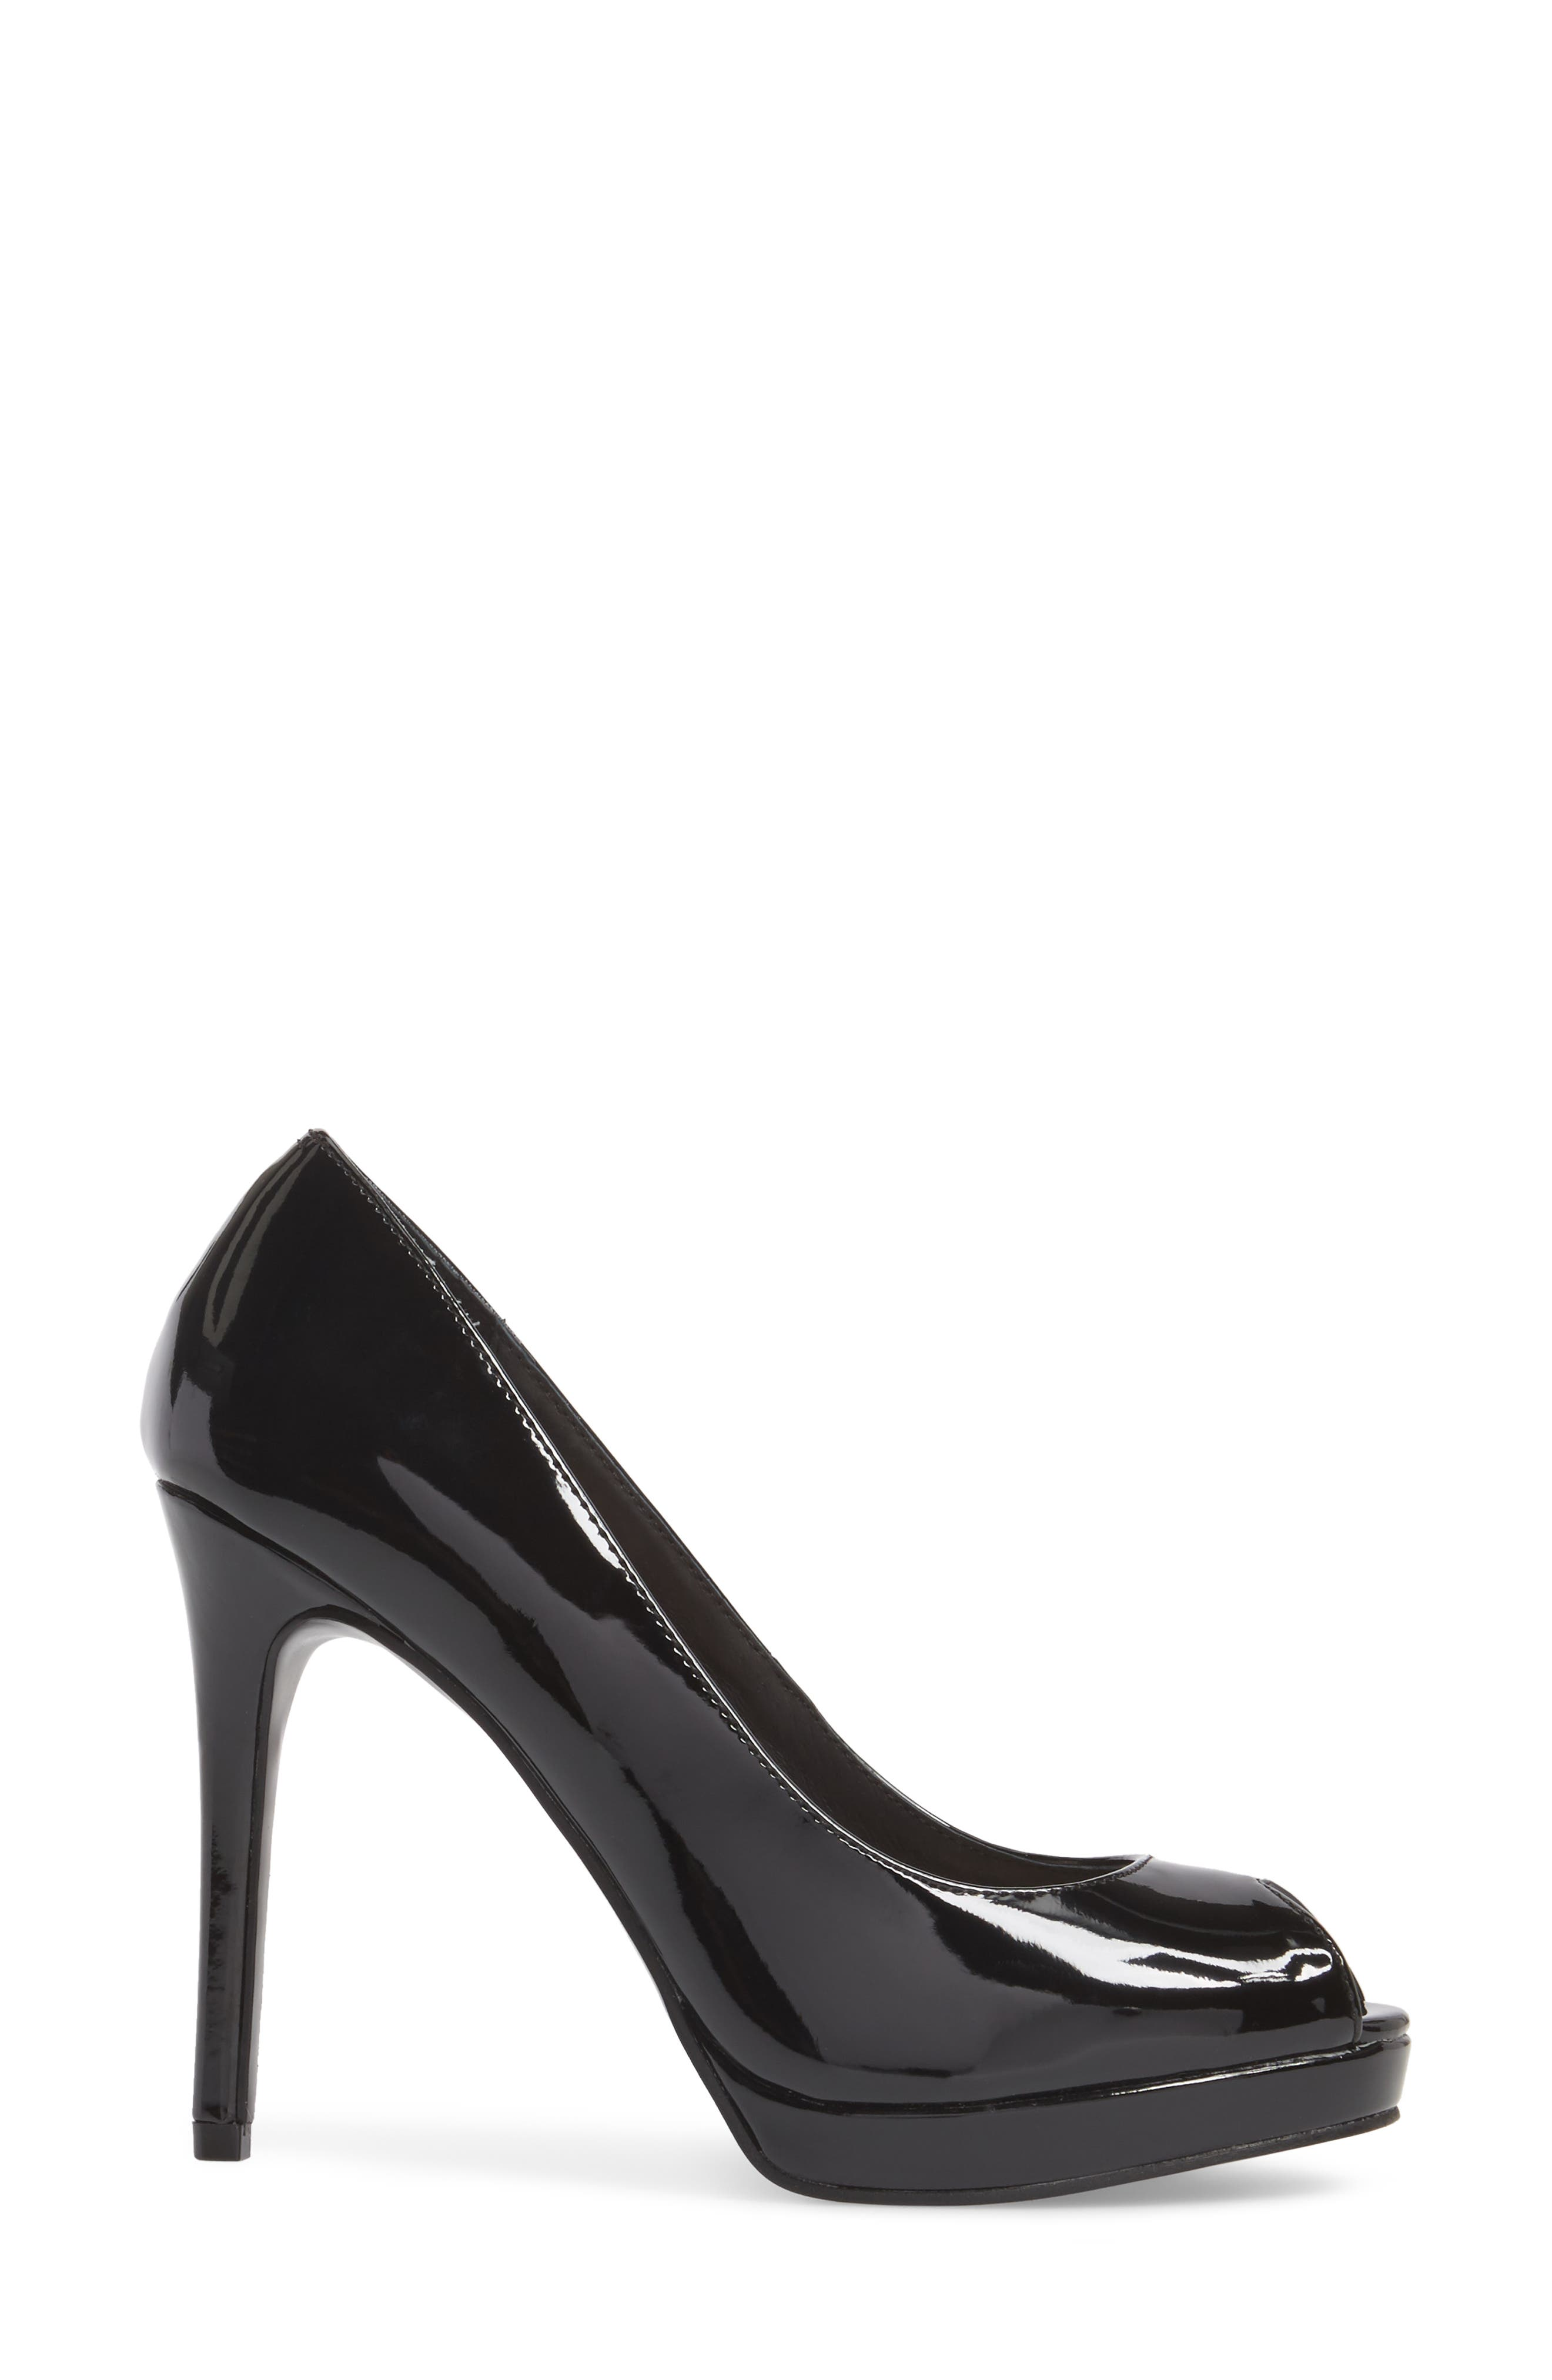 Fia Peep Toe Pump,                             Alternate thumbnail 3, color,                             001